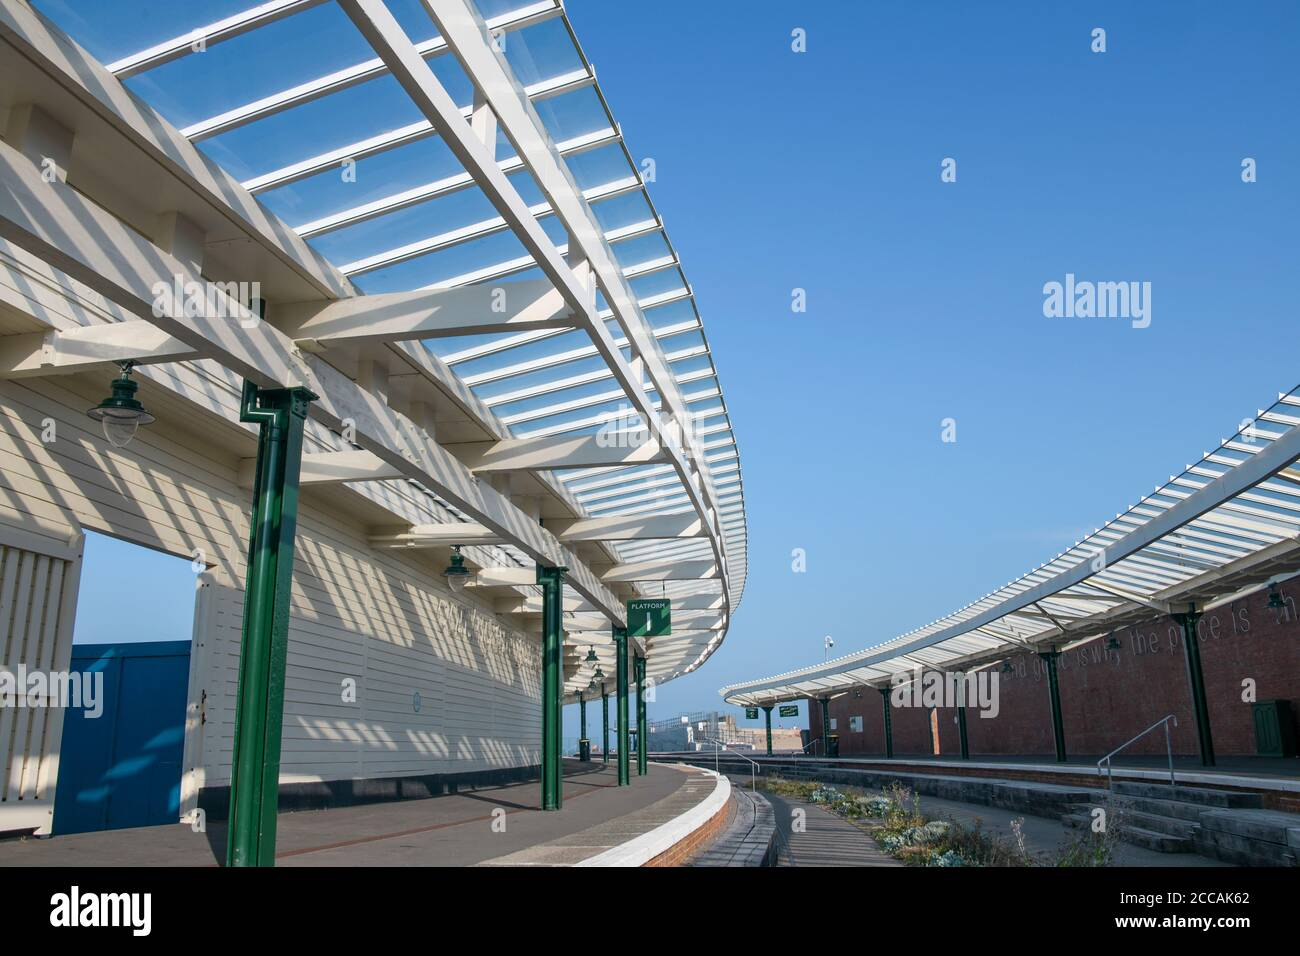 Disused Orient Express station Folkestone Harbour Rail Station Kent England Banque D'Images